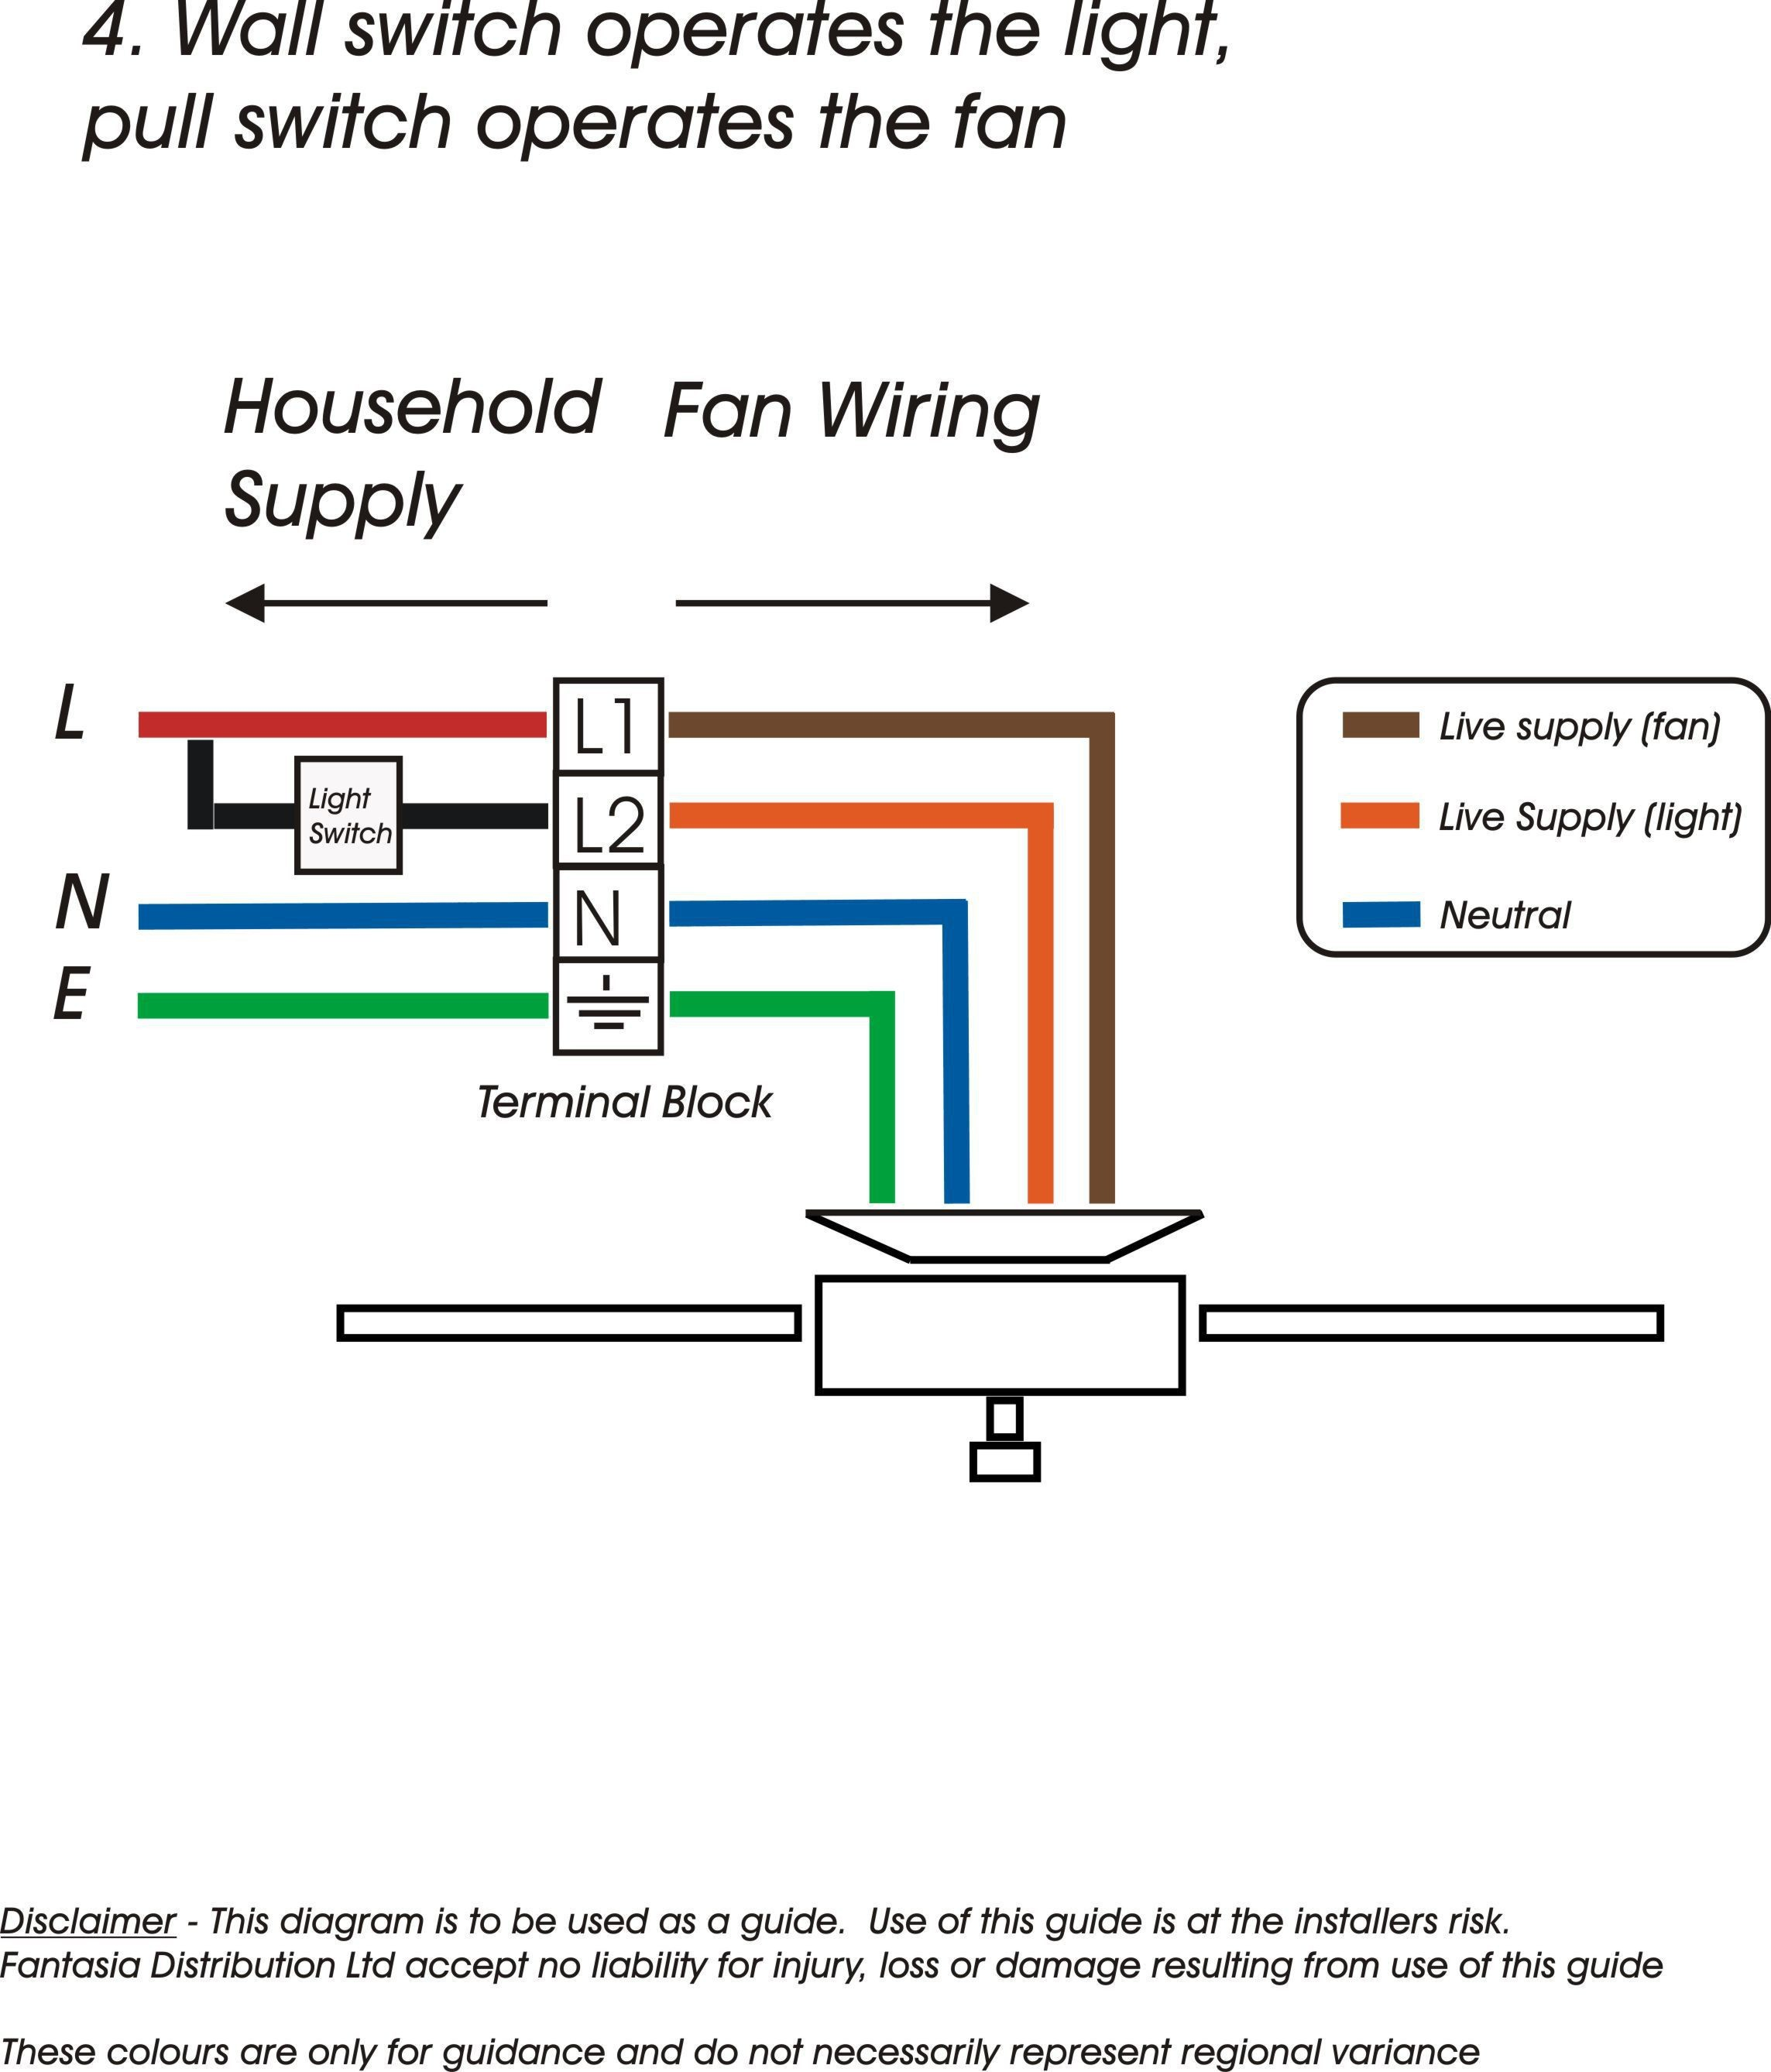 Pir motion sensor wiring diagram how to wire an insteon 2443 222 pir motion sensor wiring diagram honeywell motion sensor wiring diagram wiring diagram of pir motion sensor asfbconference2016 Gallery